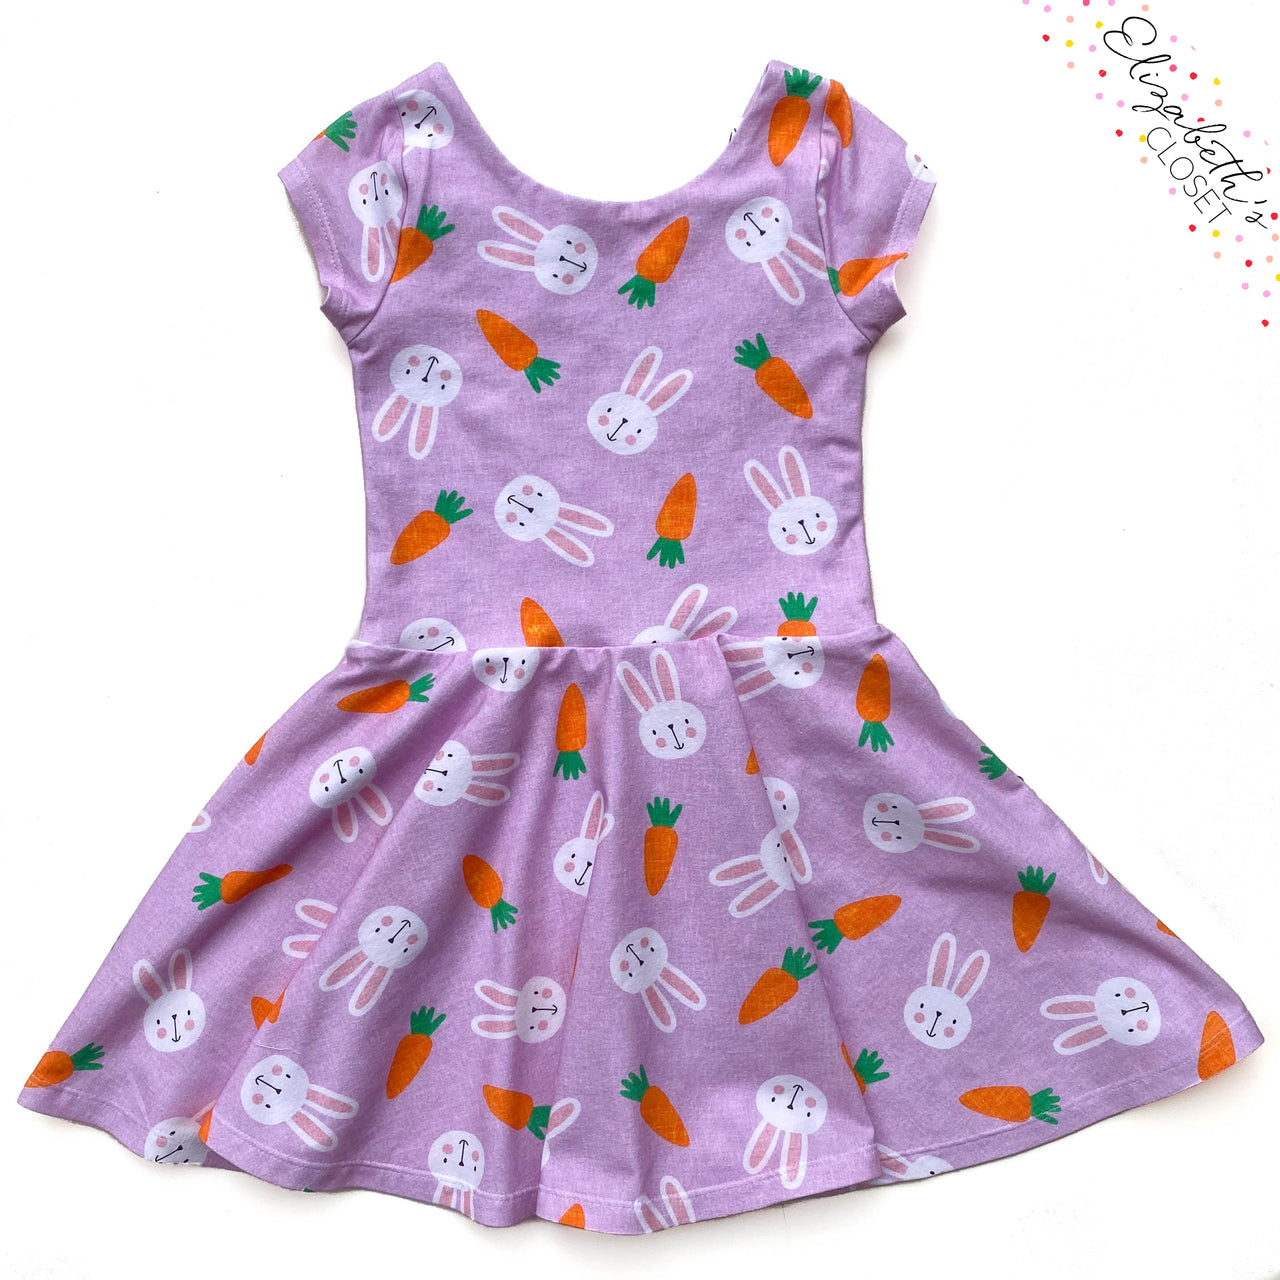 Purple Bunny Dress